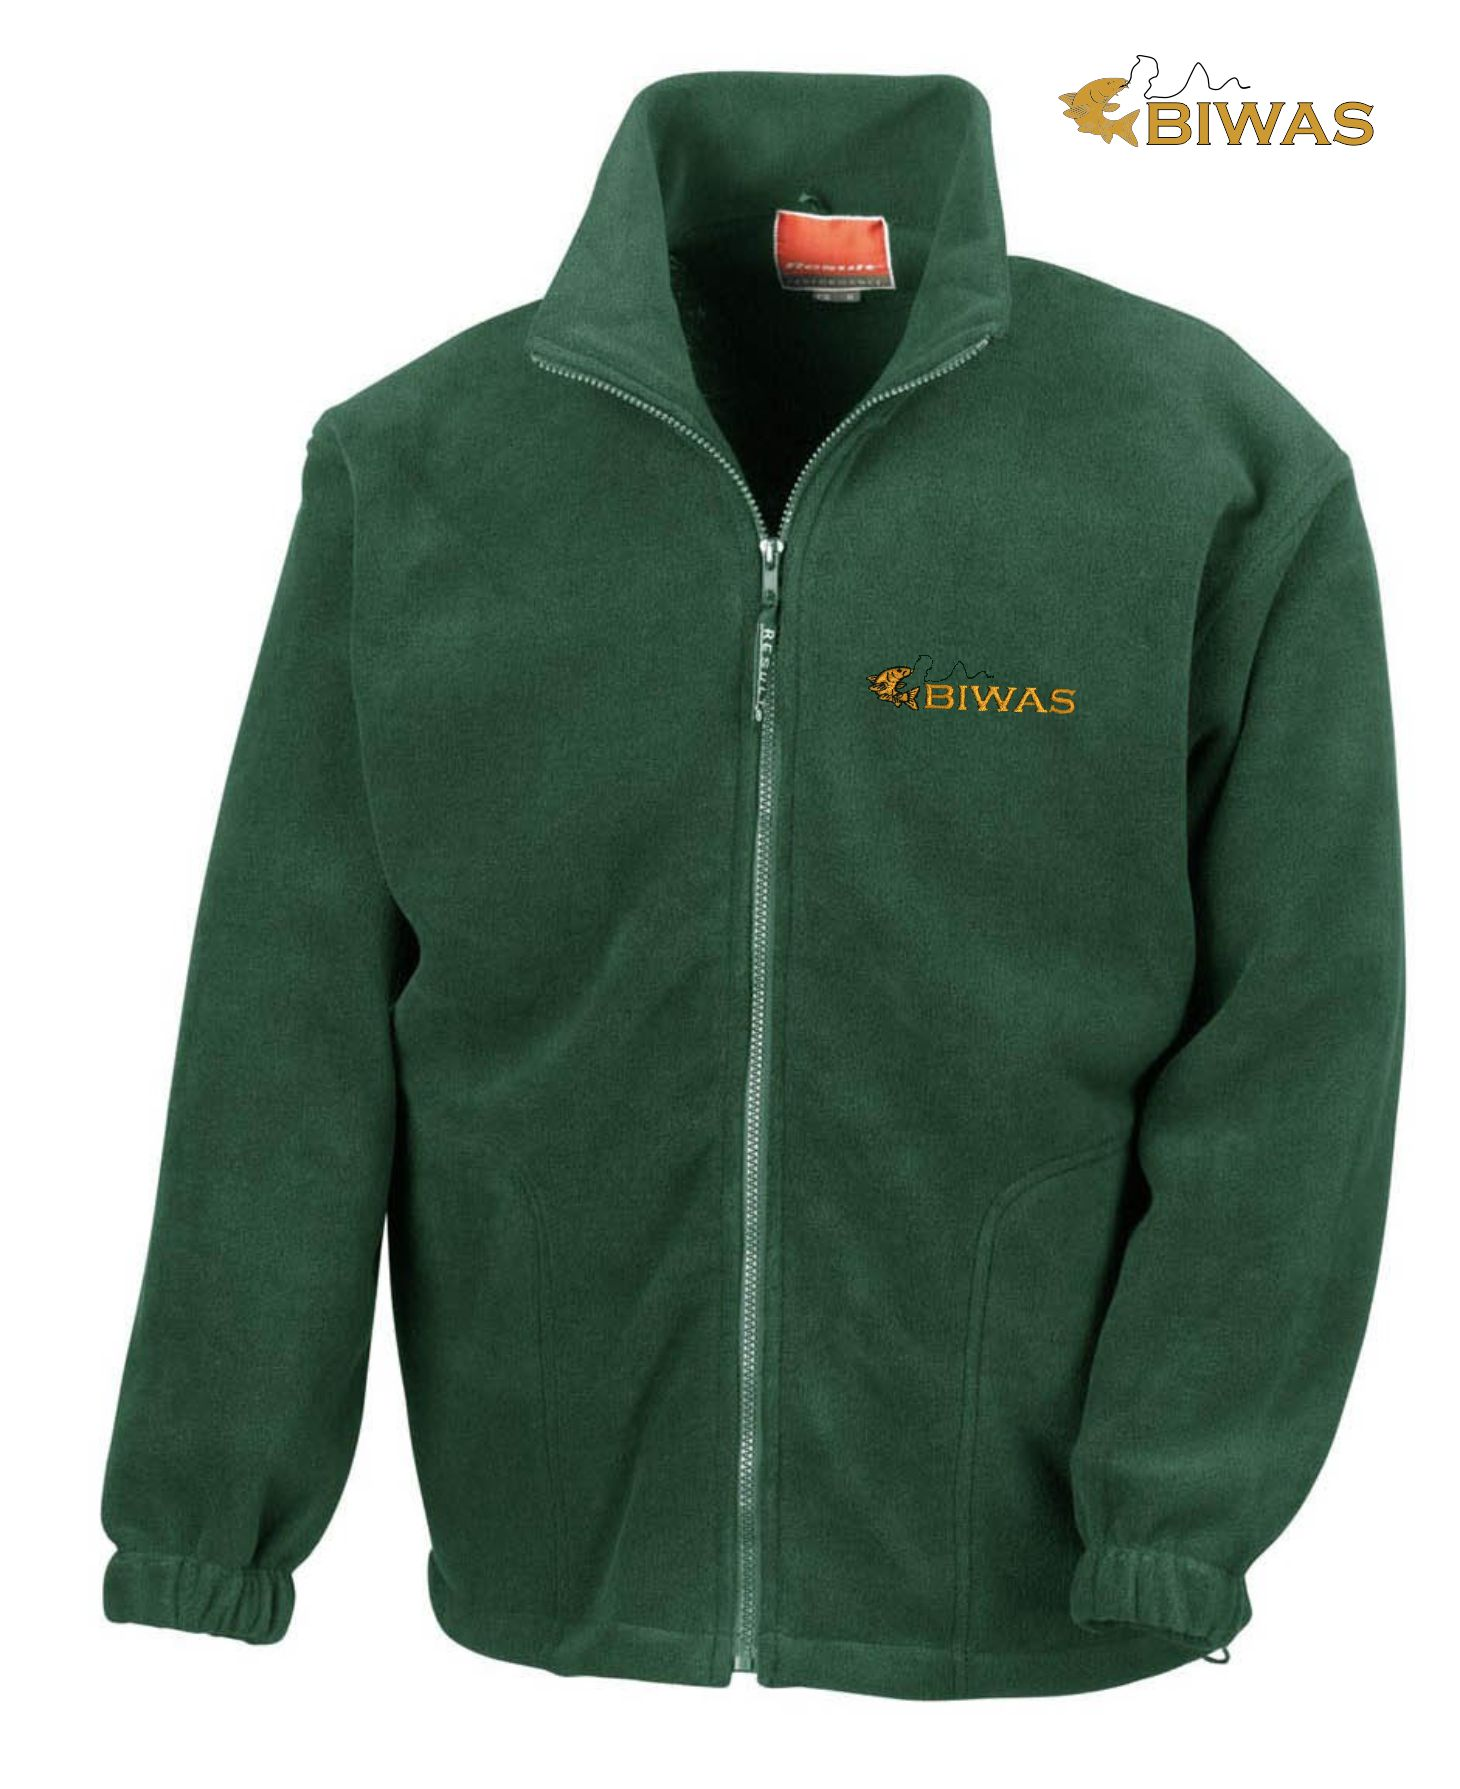 BIWAS Embroidered Fleece